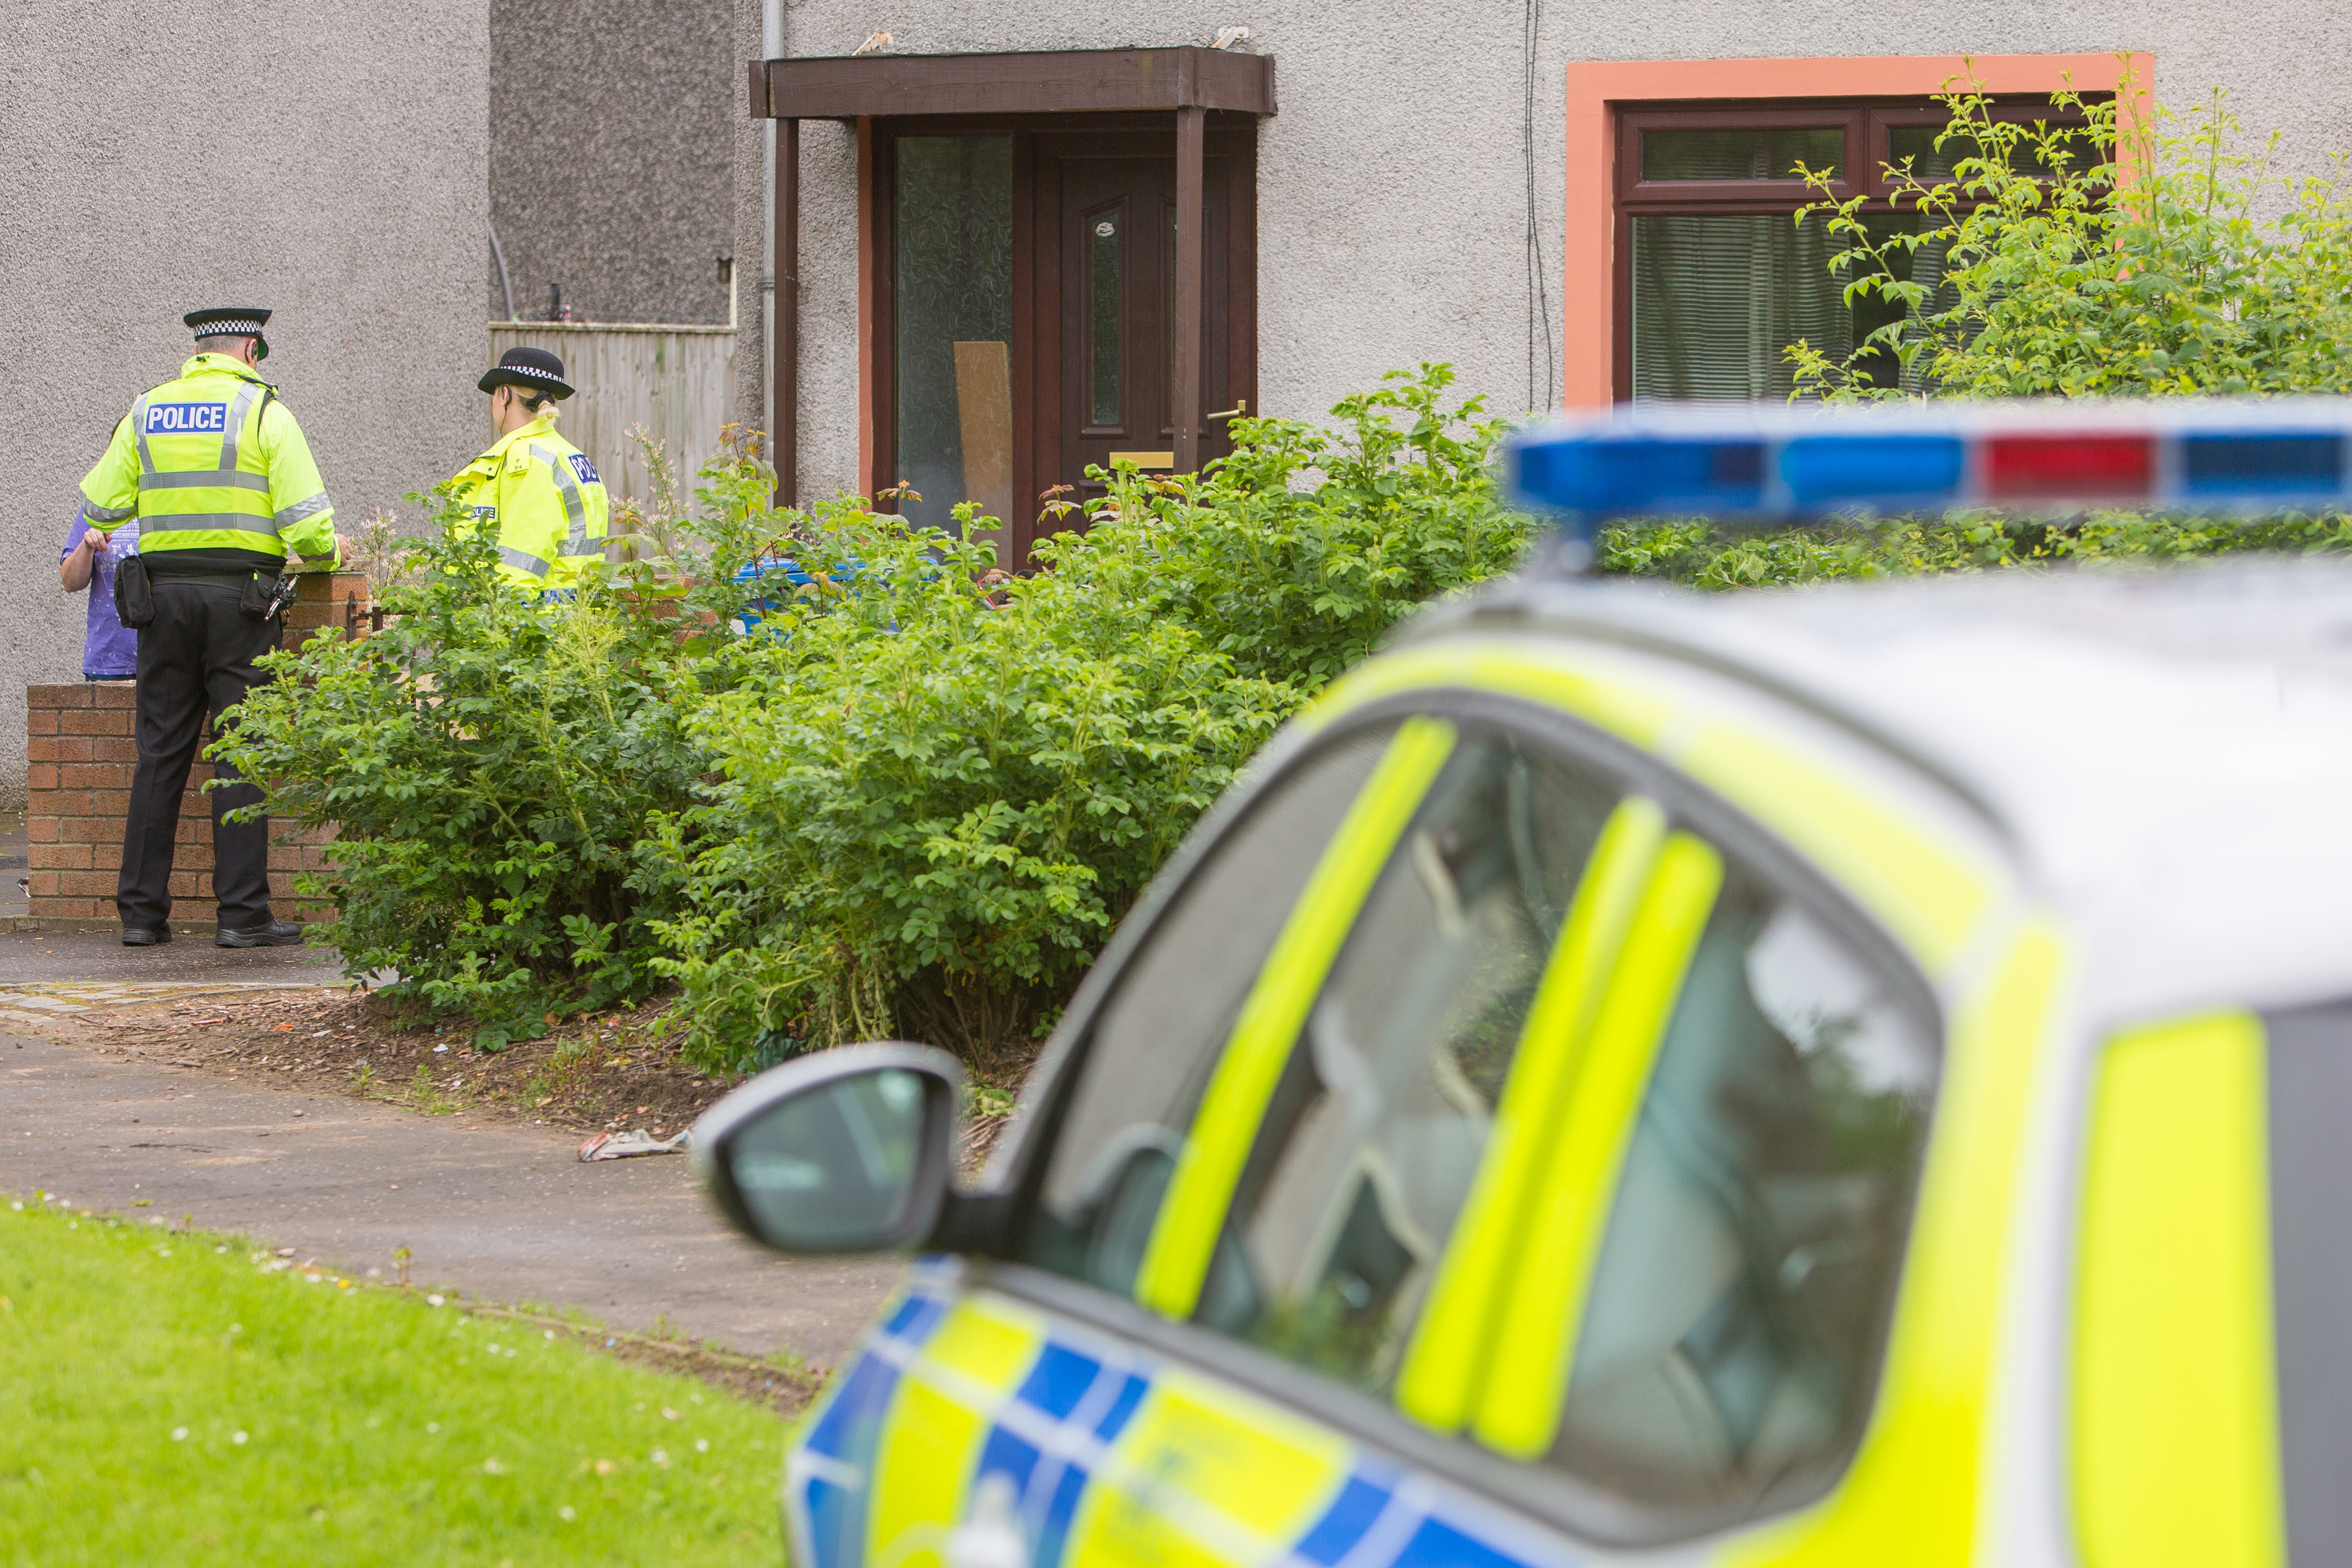 Police at the house in Barnton Place, Glenrothes.